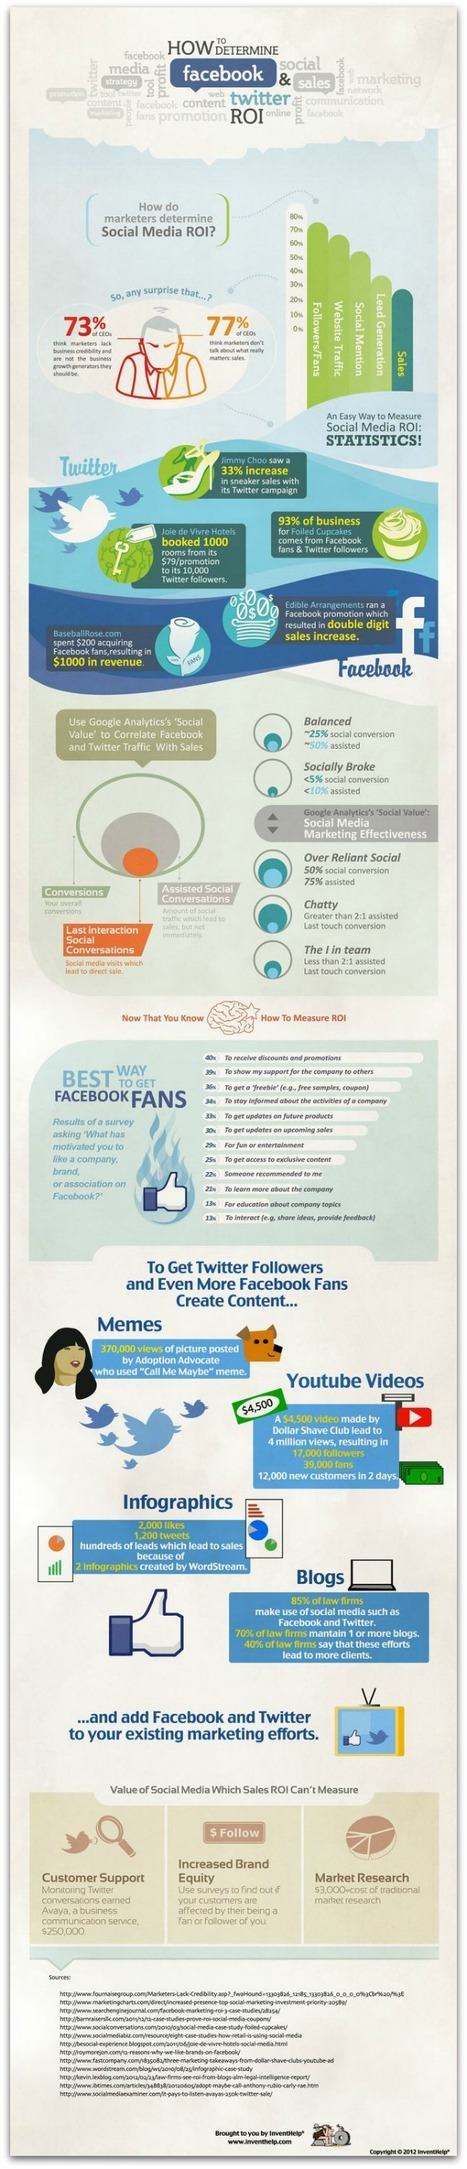 Infographic: How to measure Facebook and Twitter ROI | Social Media Monitoring | Scoop.it